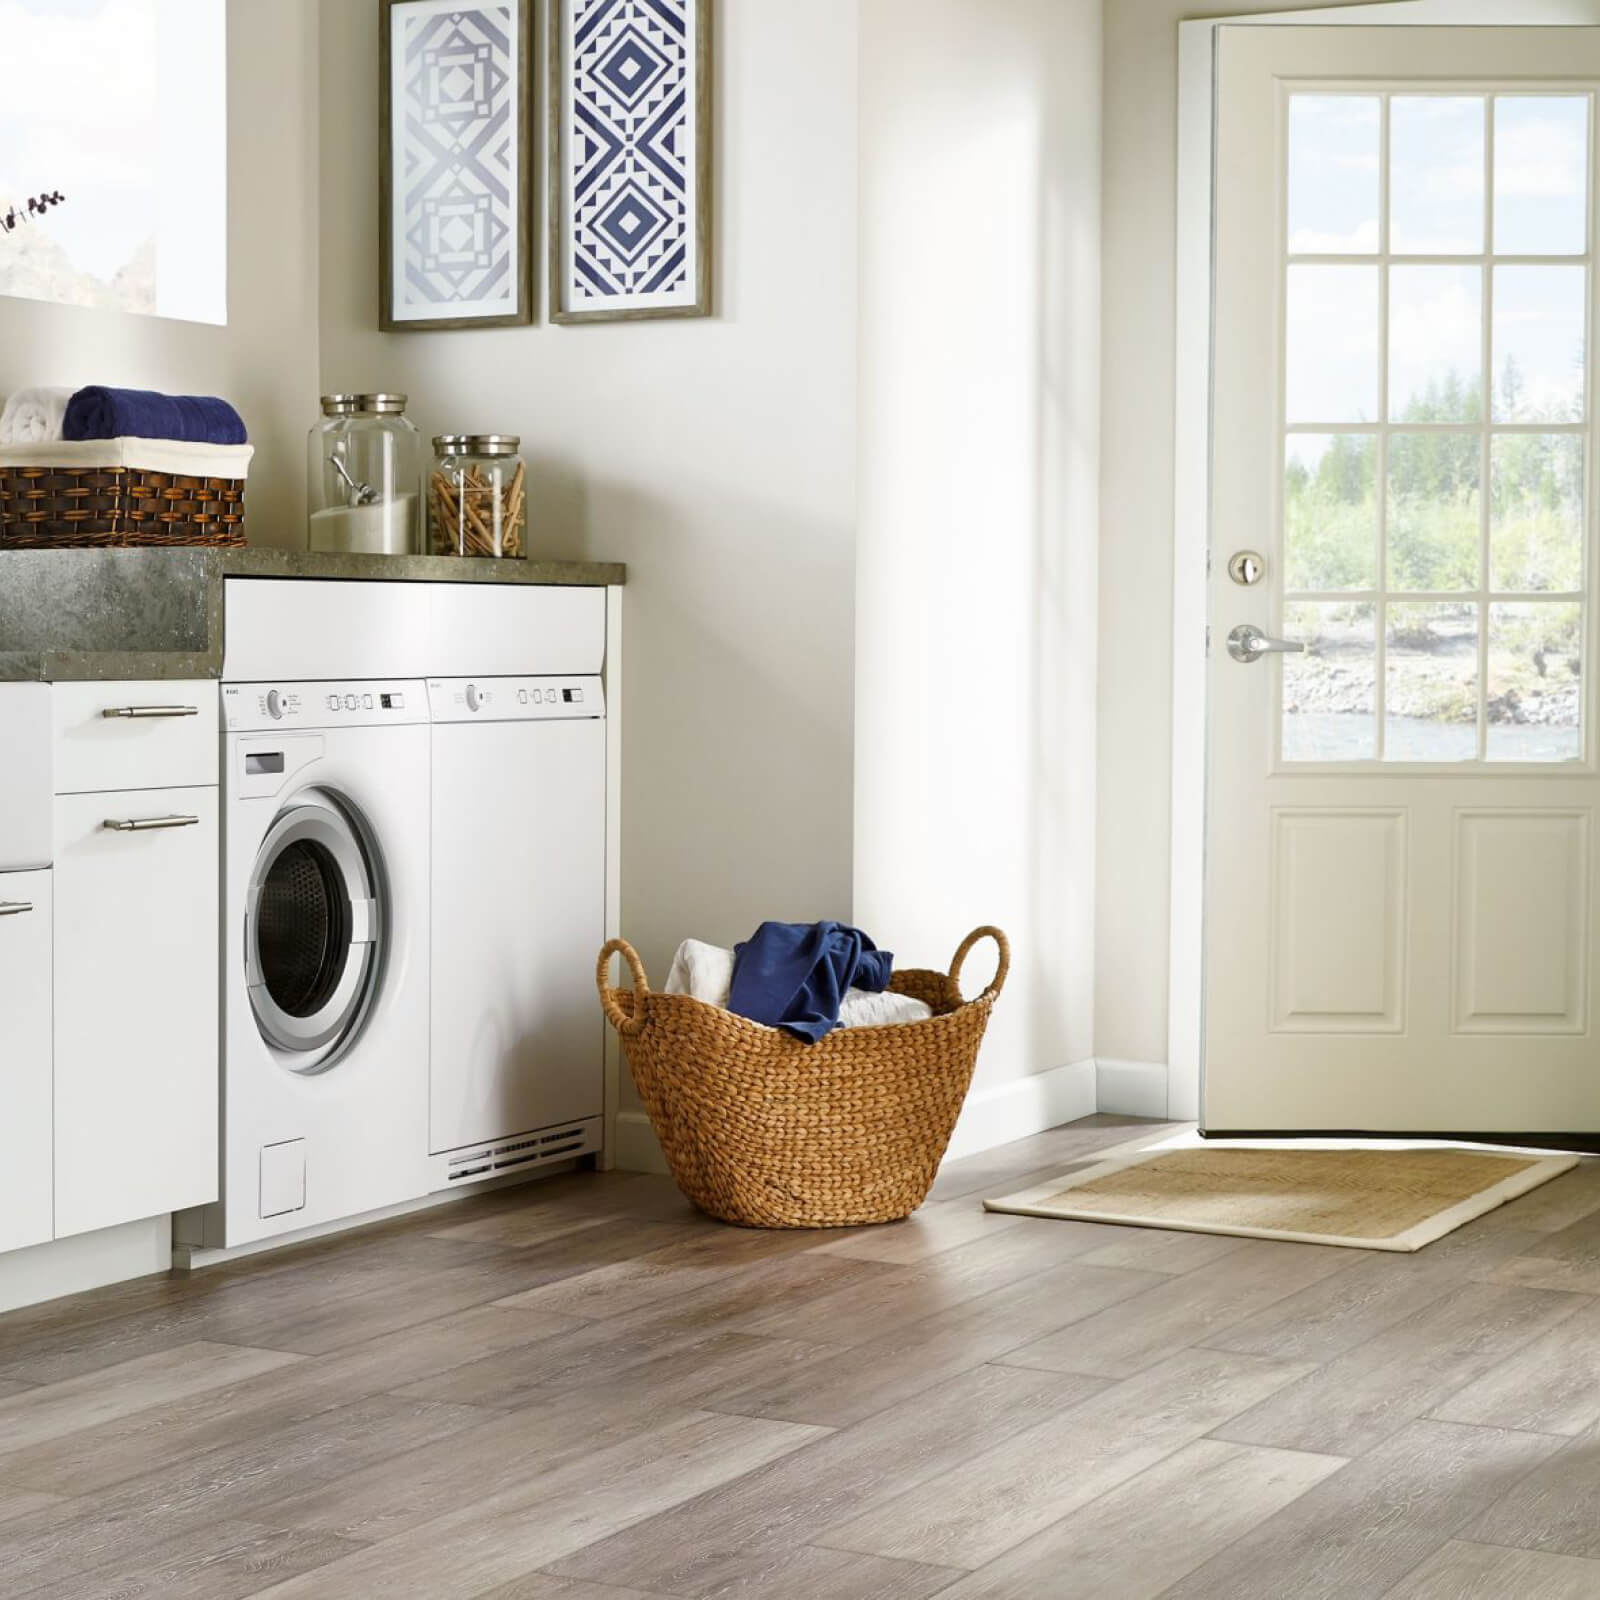 Vinyl Floors in Laundry Room